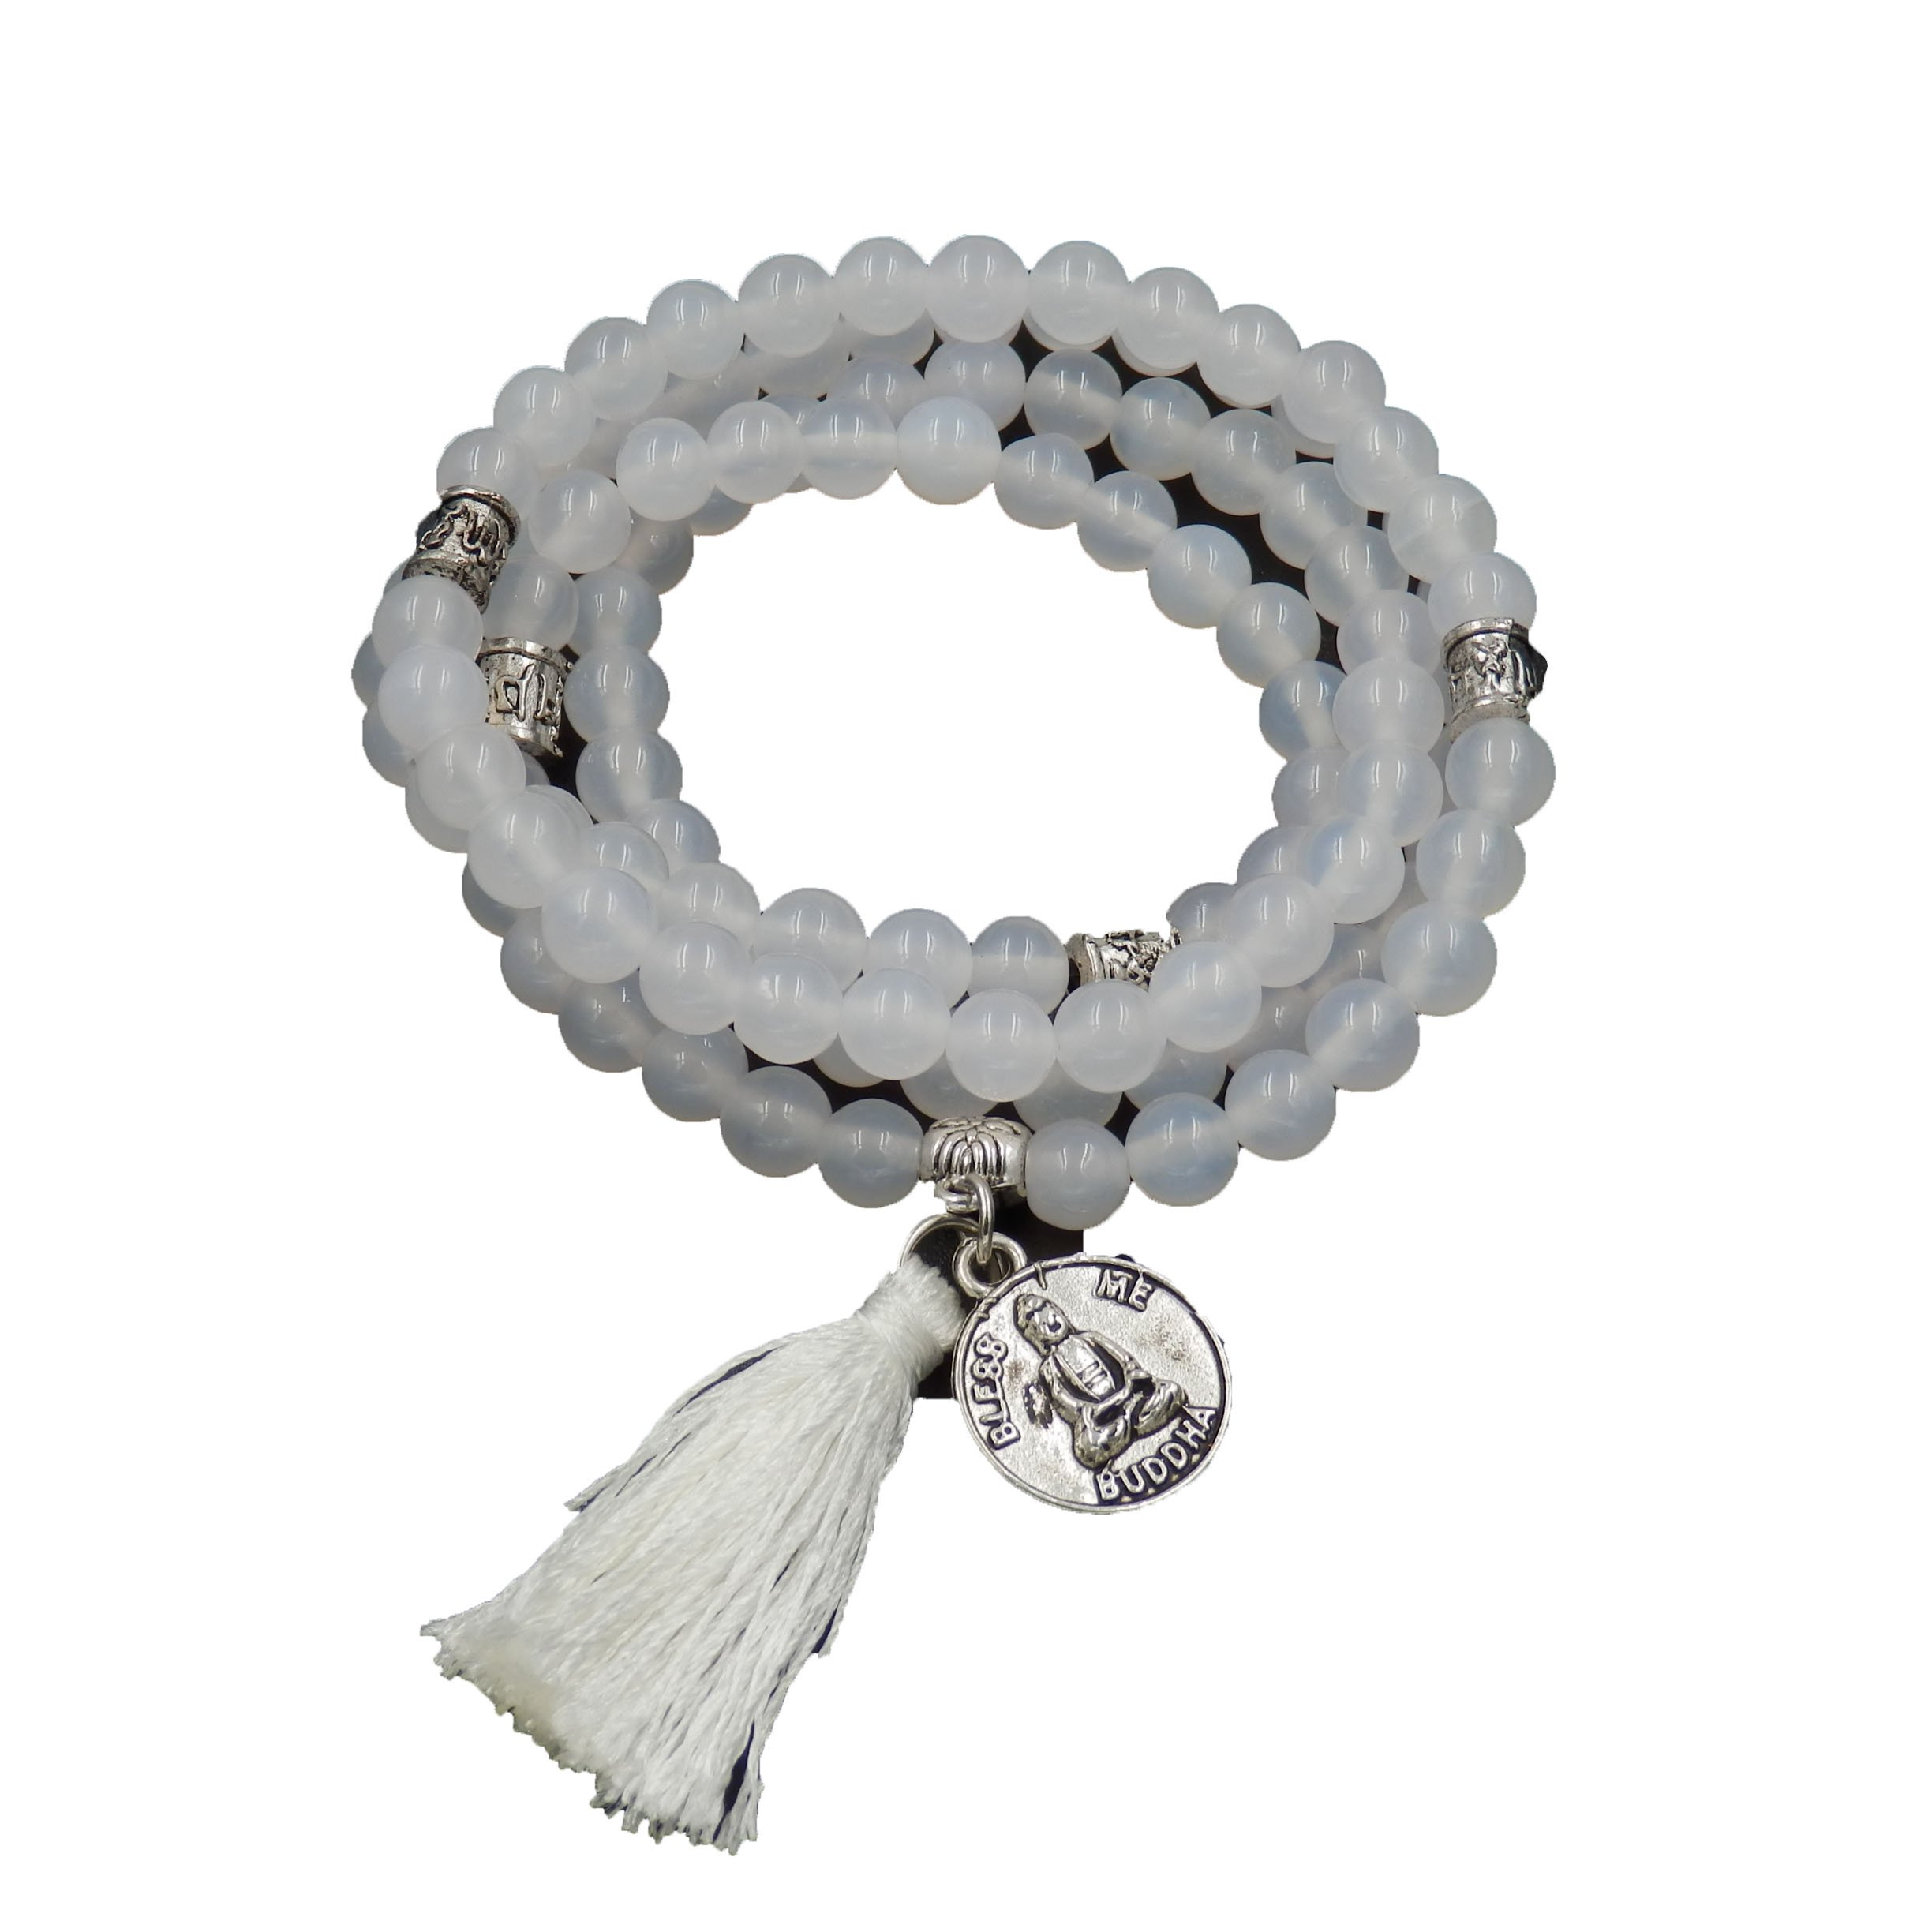 Mala Beads Bracelet, Buddhist Mala Prayer Beads, Buddha Bless Me Statement Necklace (White Agate)